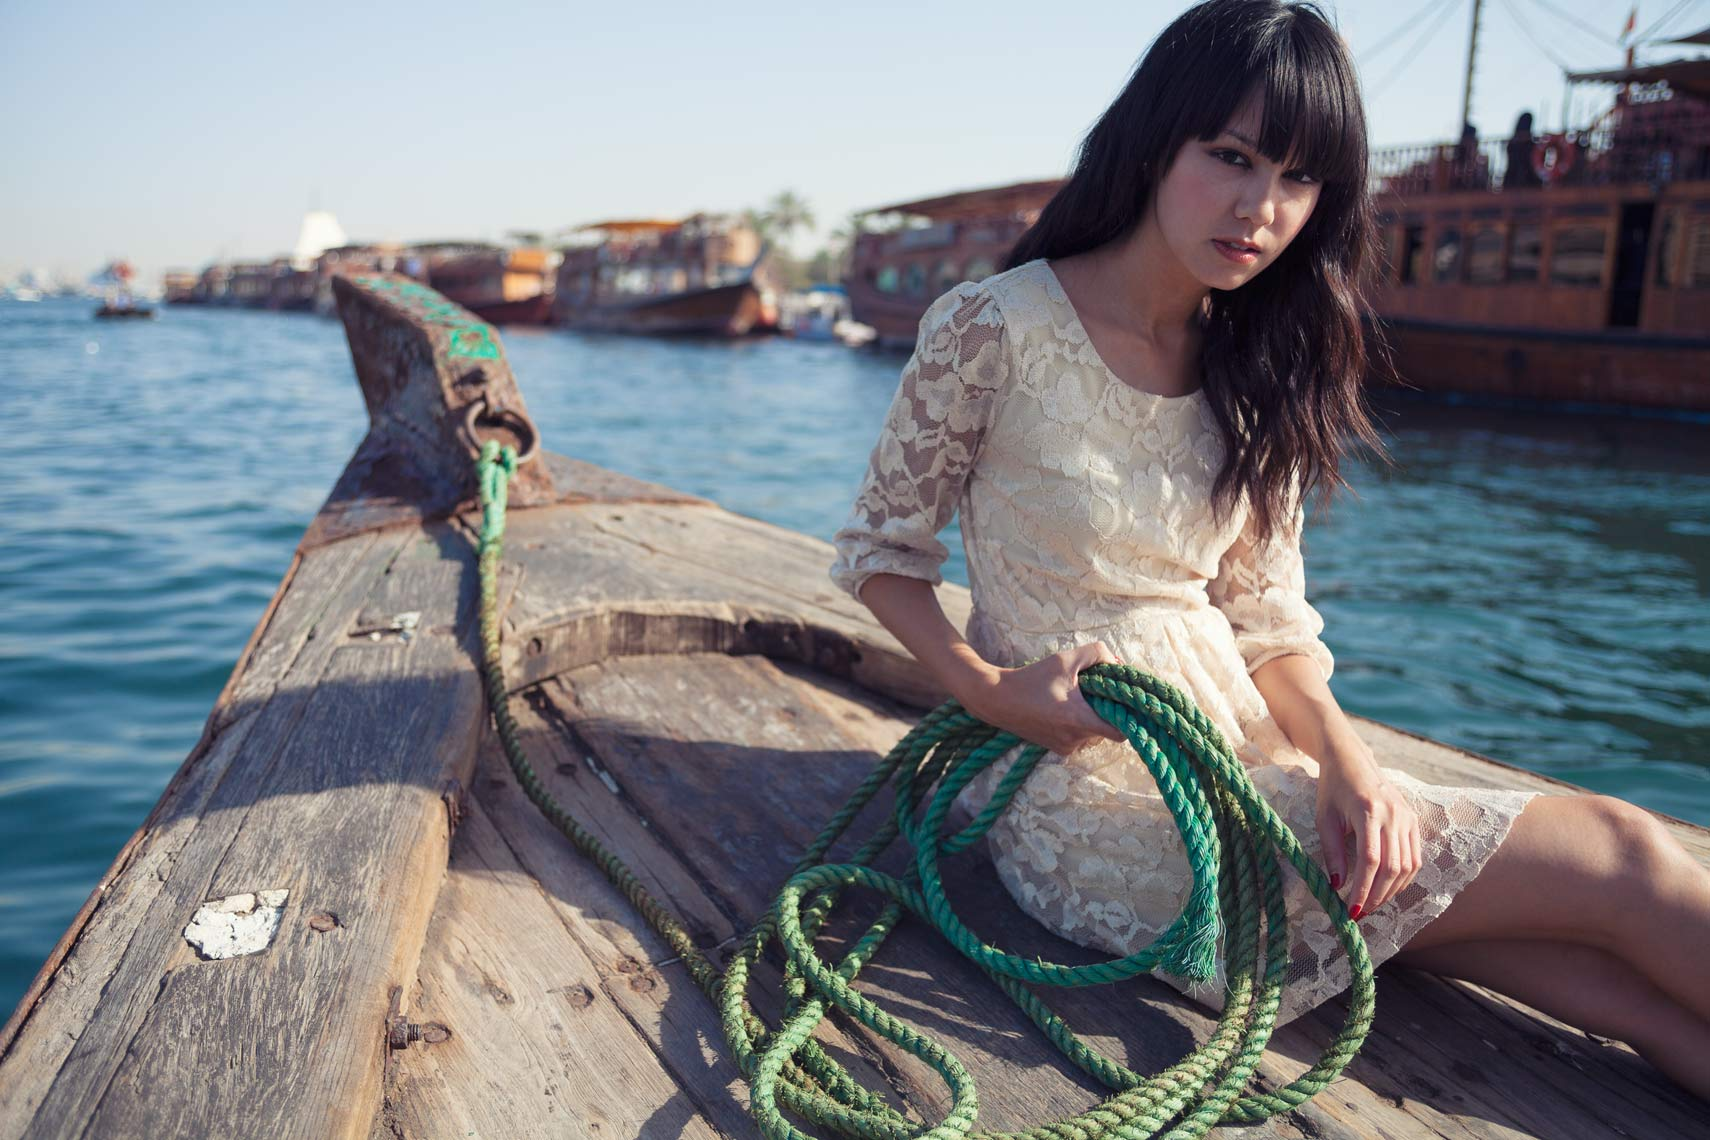 Fashion portrait of woman sitting on a boat holding a green rope in Dubai